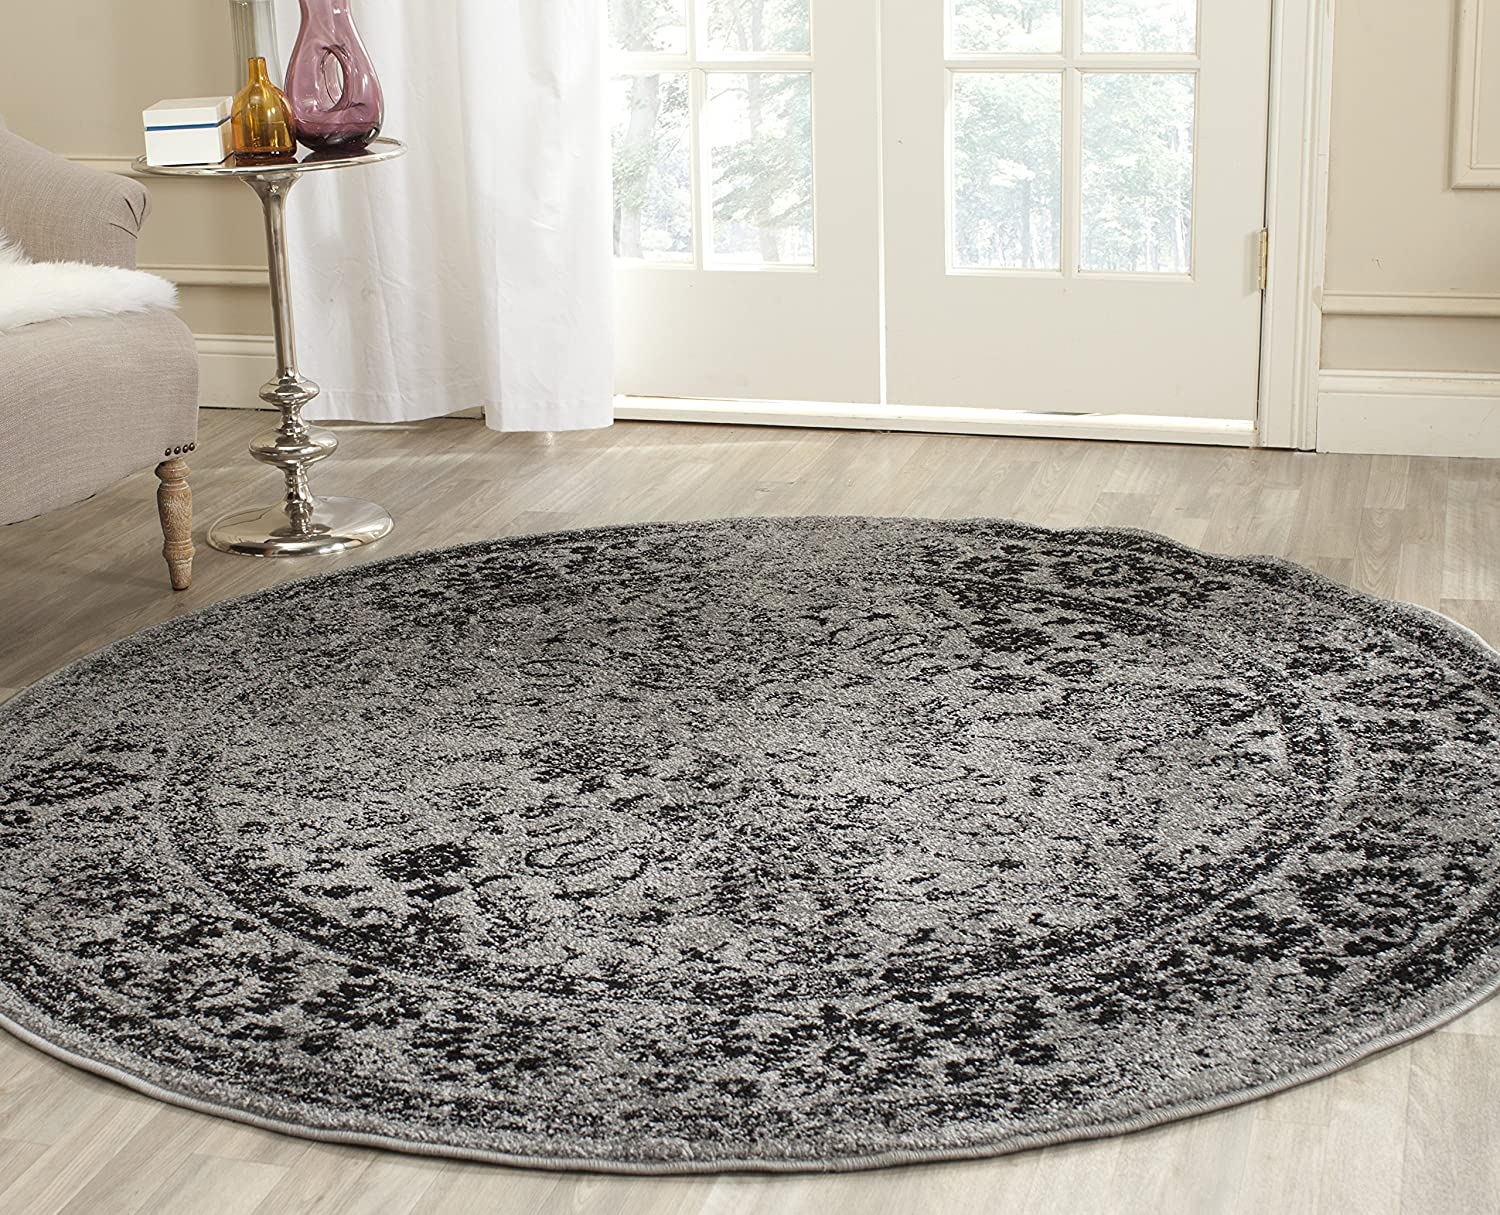 Amazon com safavieh adirondack collection adr109b grey and black oriental vintage distressed round area rug 10 diameter kitchen dining